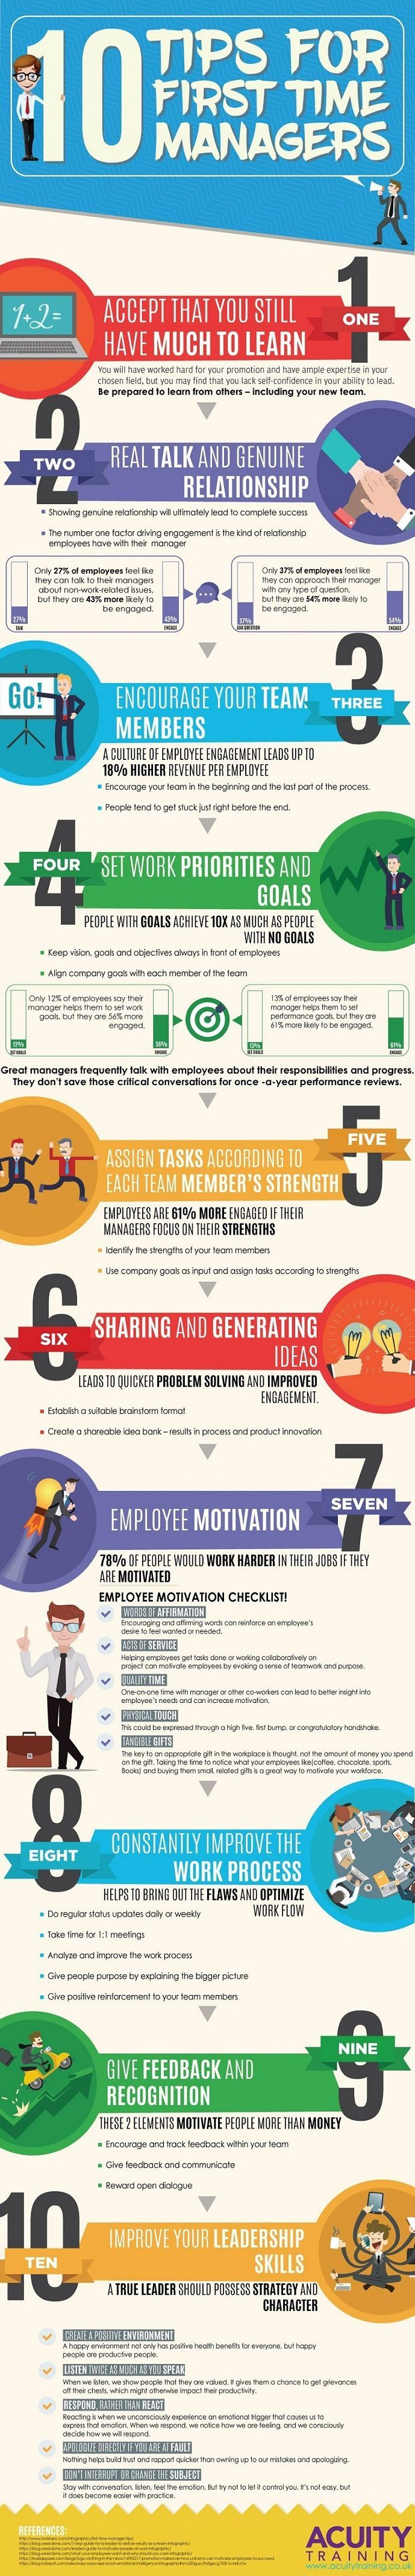 Management : Tips for Managers Infographic